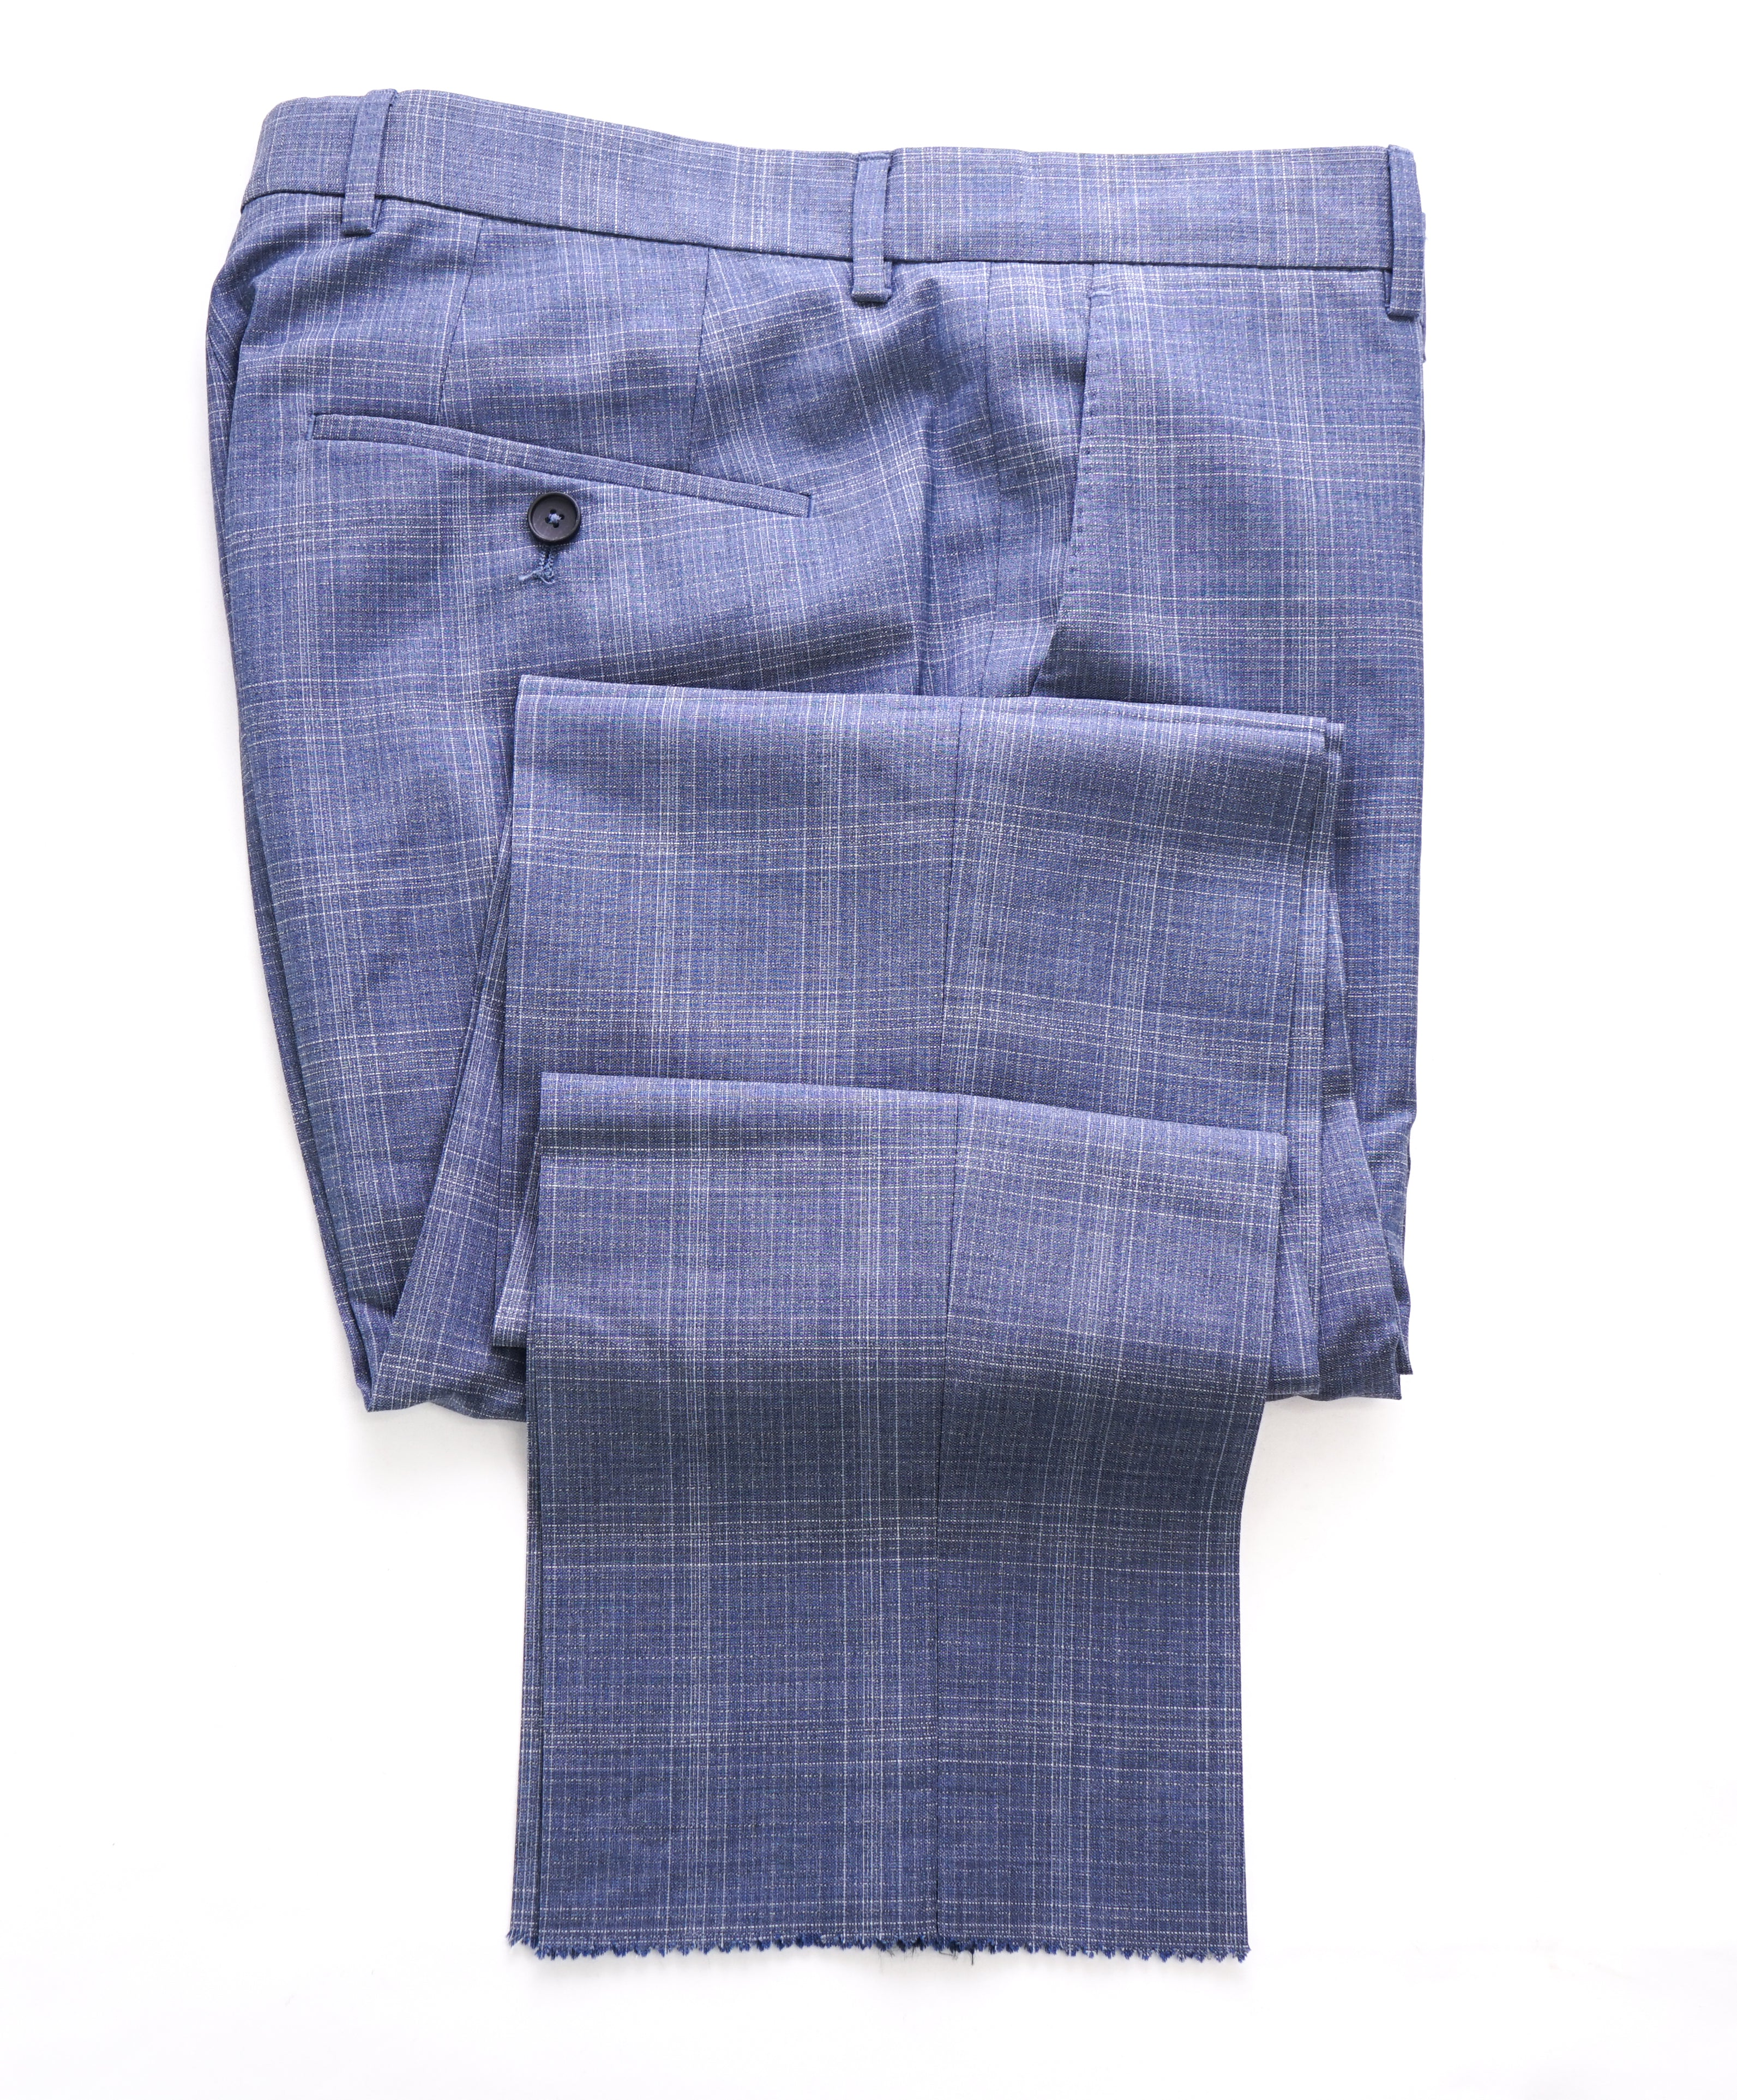 "HUGO BOSS - Powder Blue Plaid ""Novan4/Ben2"" Flat Front Dress Pants - 31W"